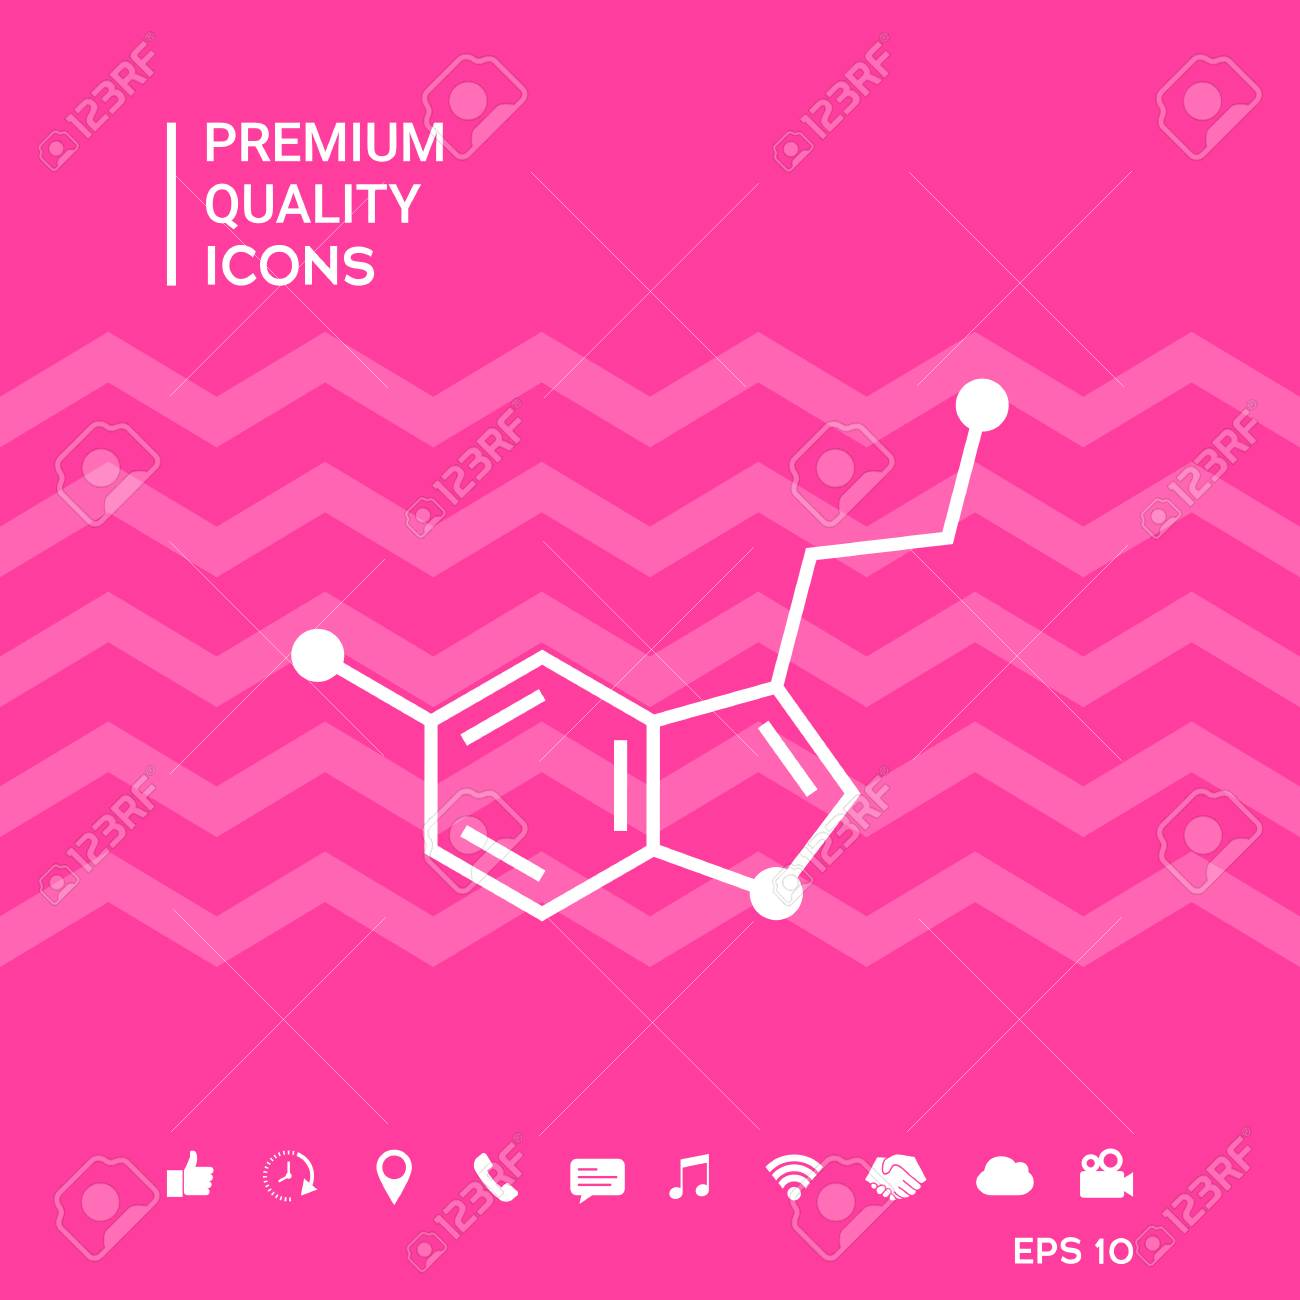 Chemical Formula Of Serotonin With Smartphone Tools Icons On 1300x1300